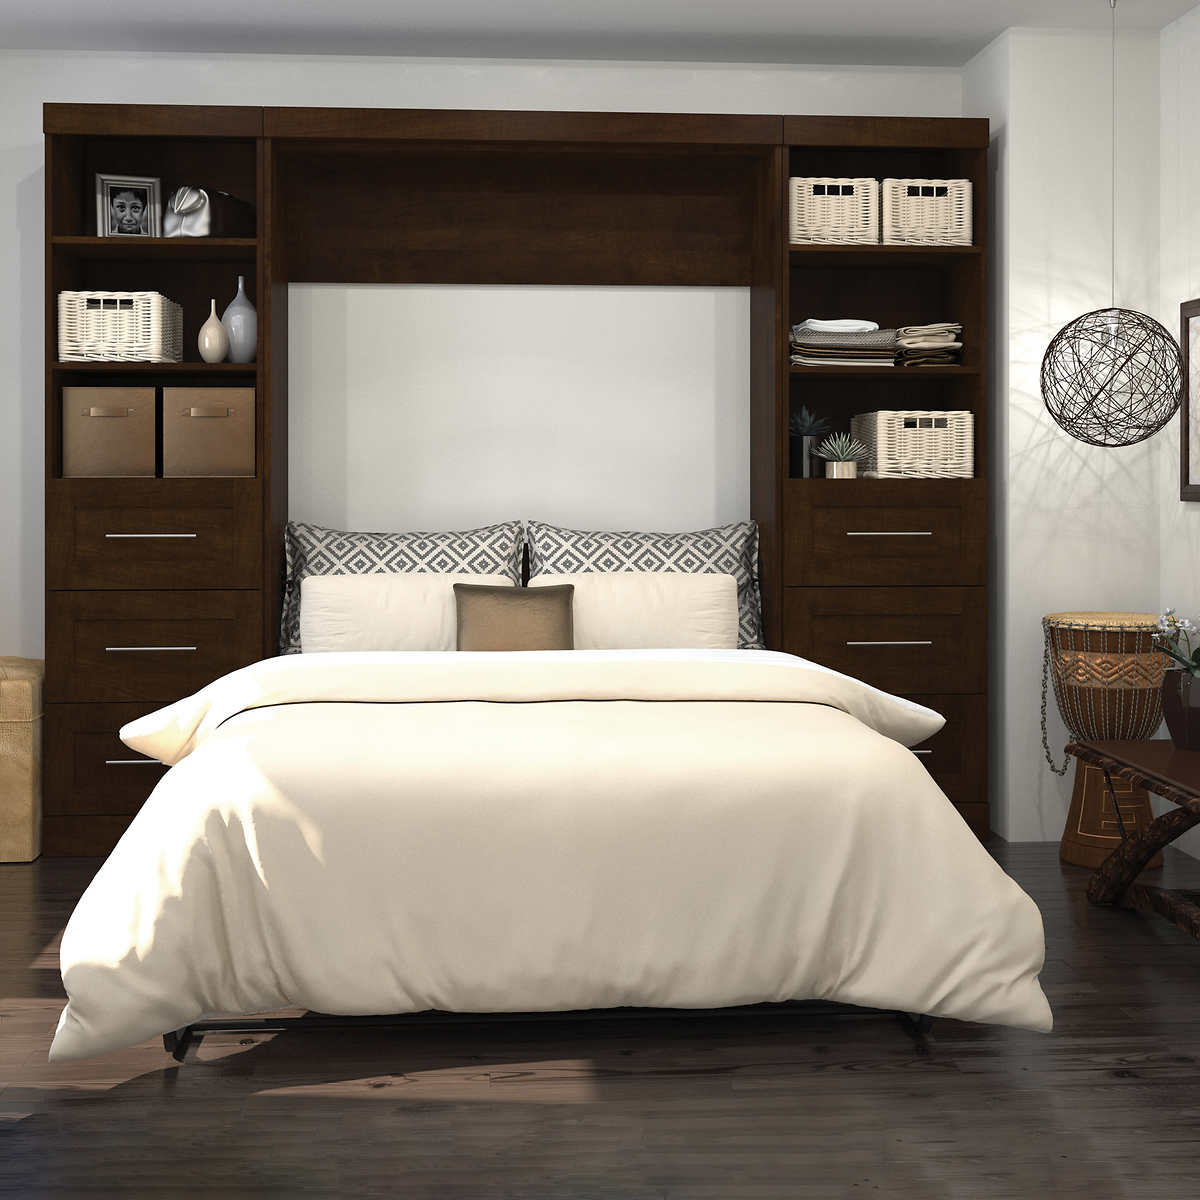 Boutique Full Wall Bed With Two 25 Storage Units And Drawers In Brown Costco